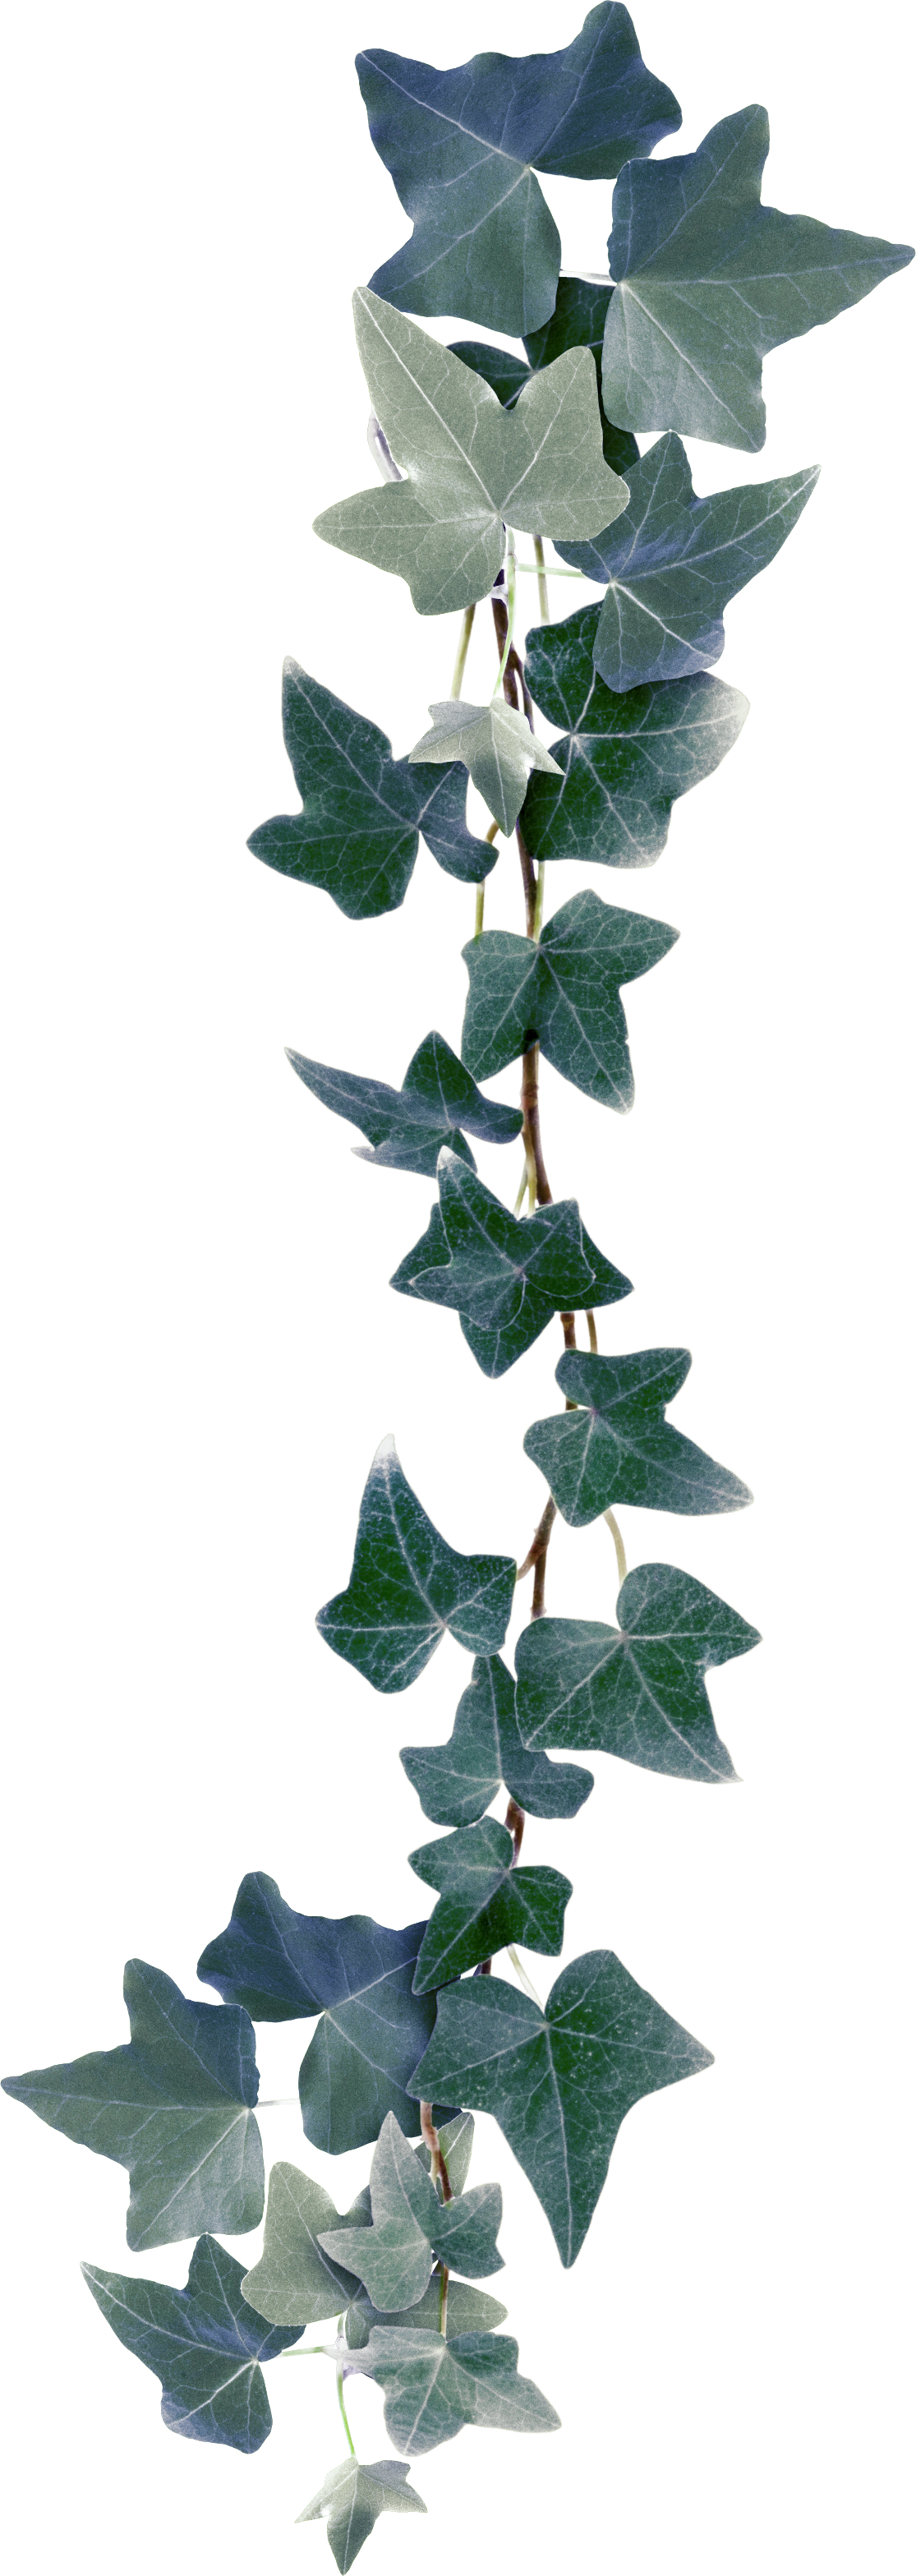 Bindweed plant clip art. Ivy clipart holly and ivy